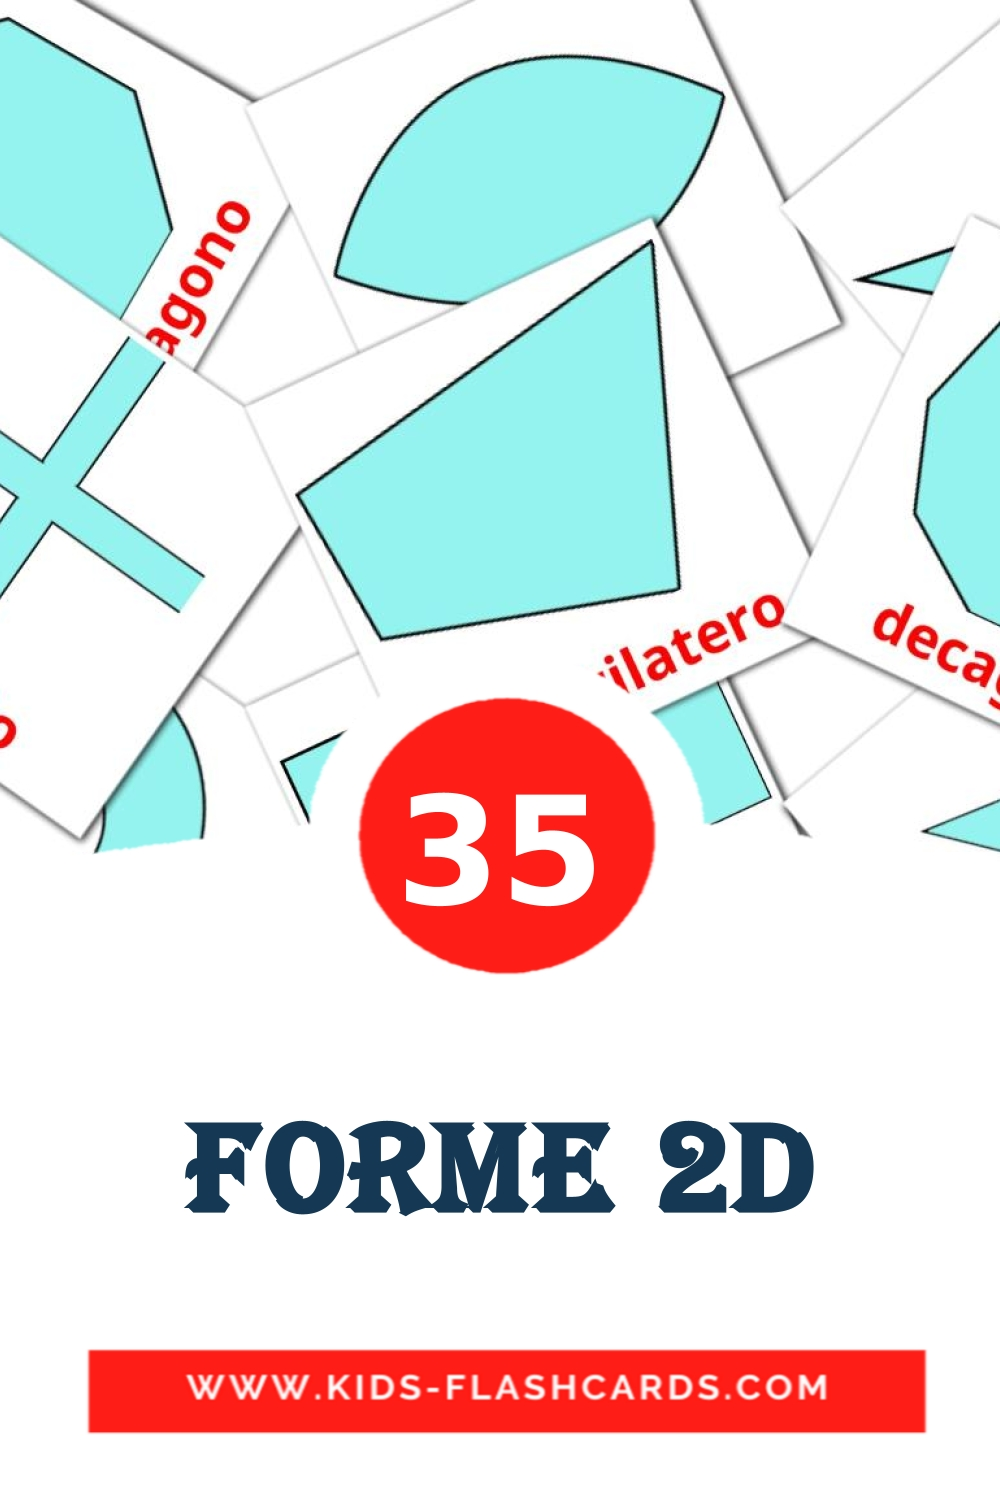 Forme 2D - free cards in italian